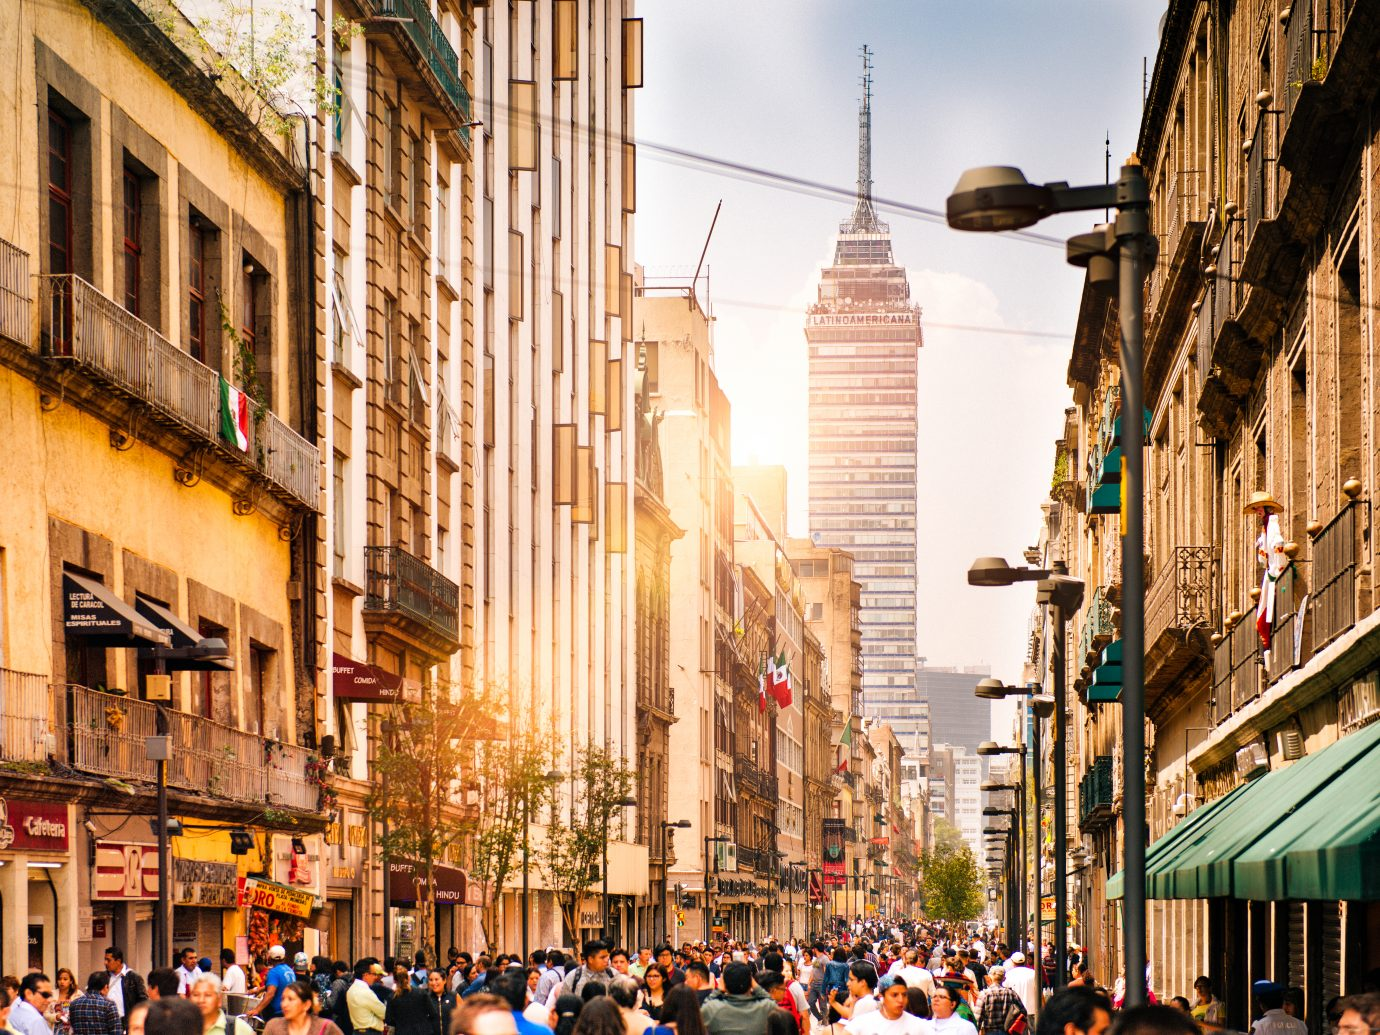 Street view of Torre Latinoamericana from The Zocalo Square in Mexico City.